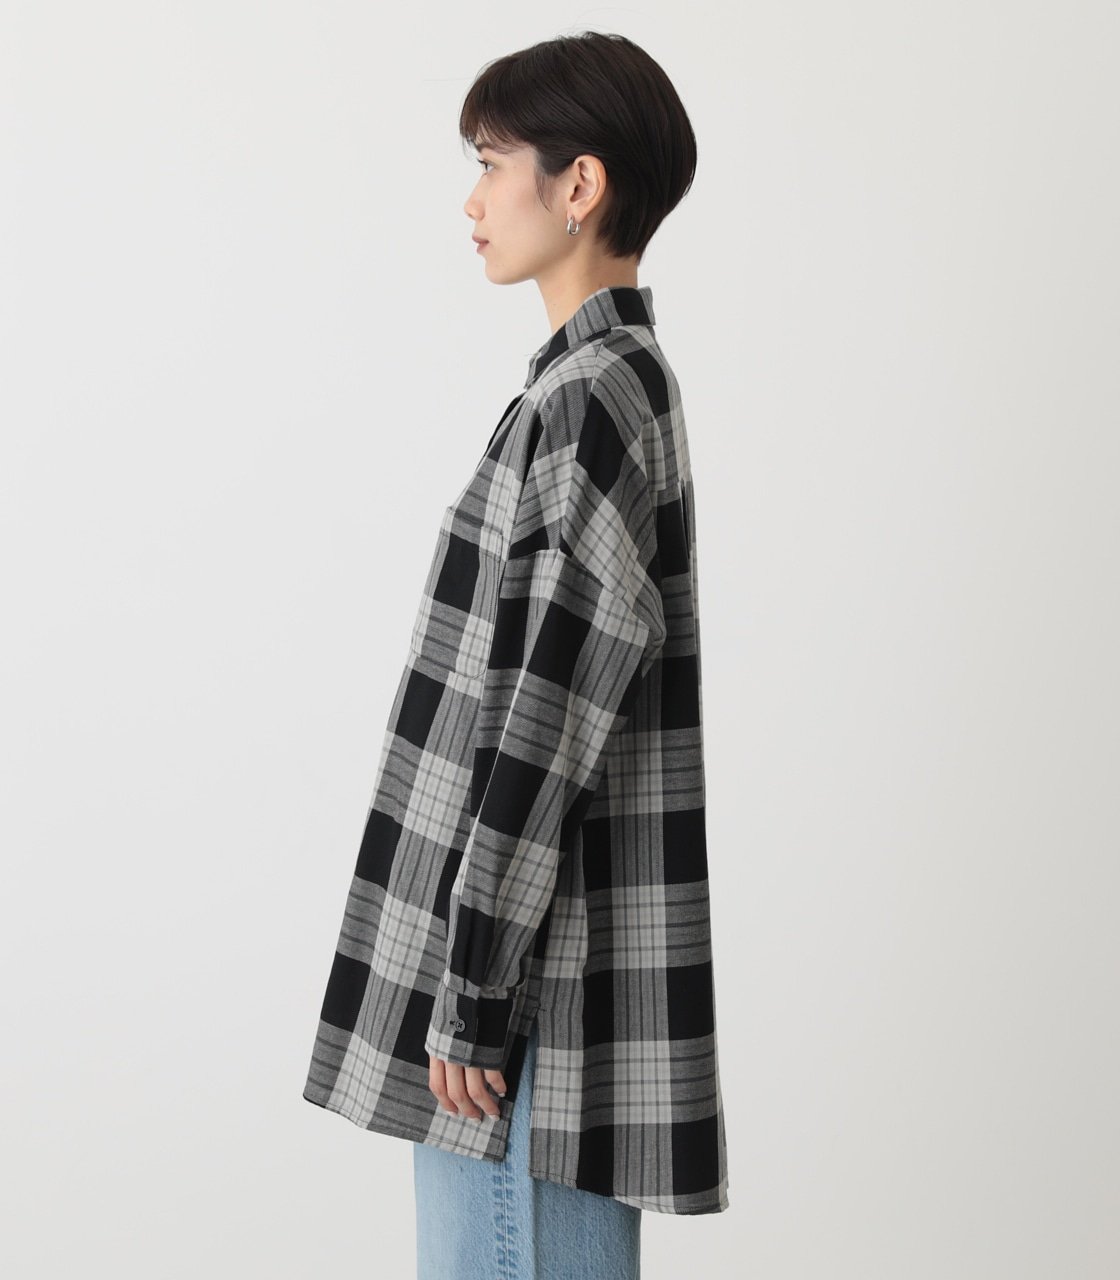 CHECK OVER SHIRT/チェックオーバーシャツ 詳細画像 柄BLK 6